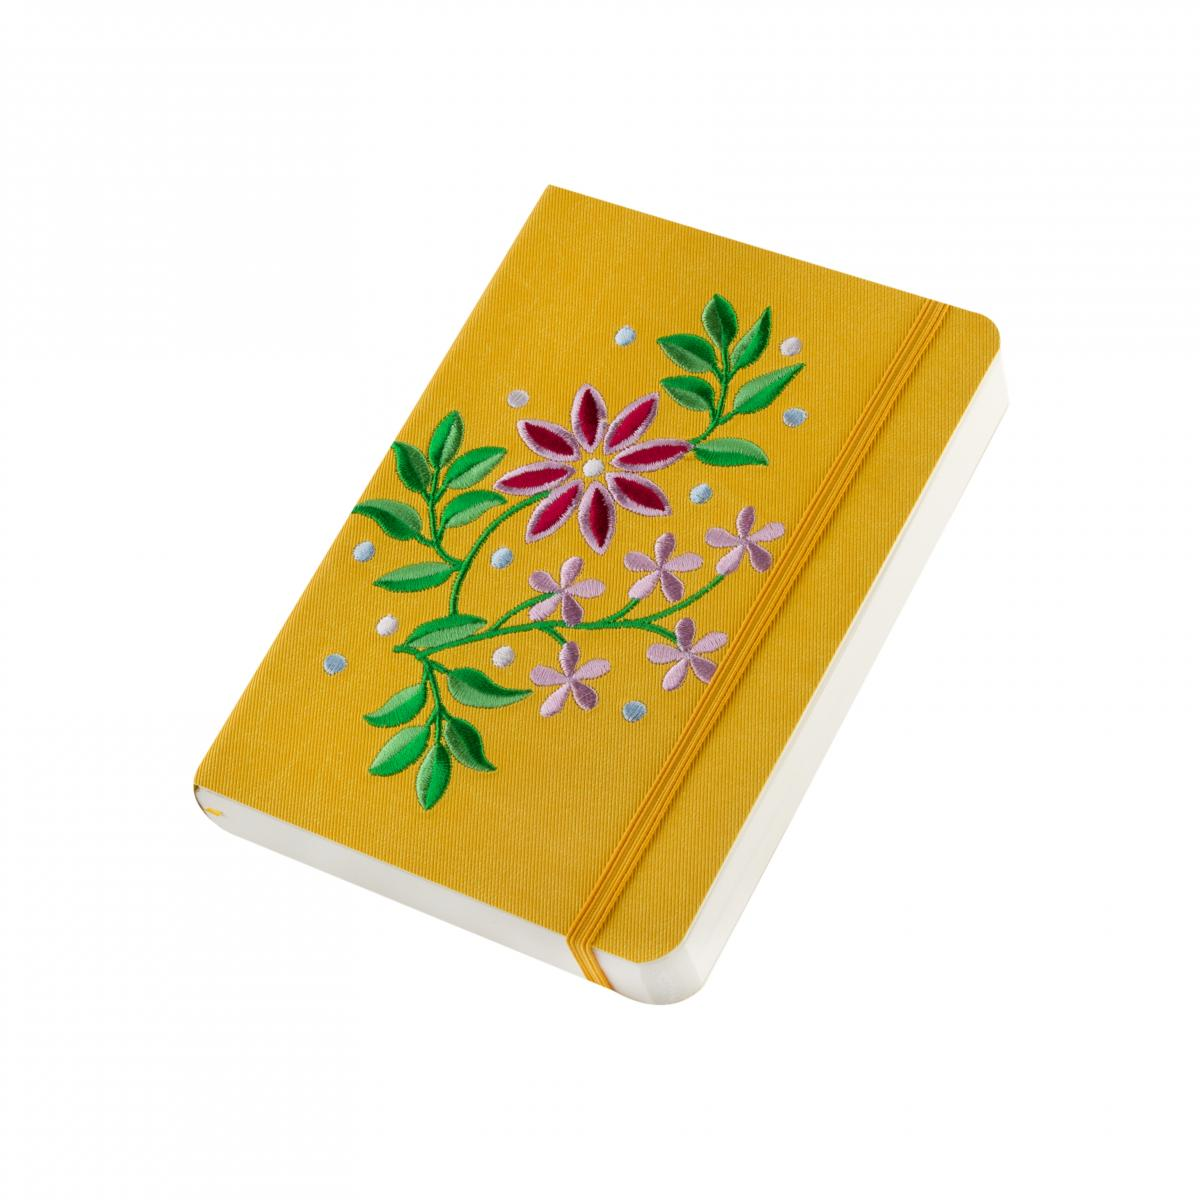 "Notebook made of eco-leather with embroidery ""Ternopilshyna"", yellow. Photo №2. 